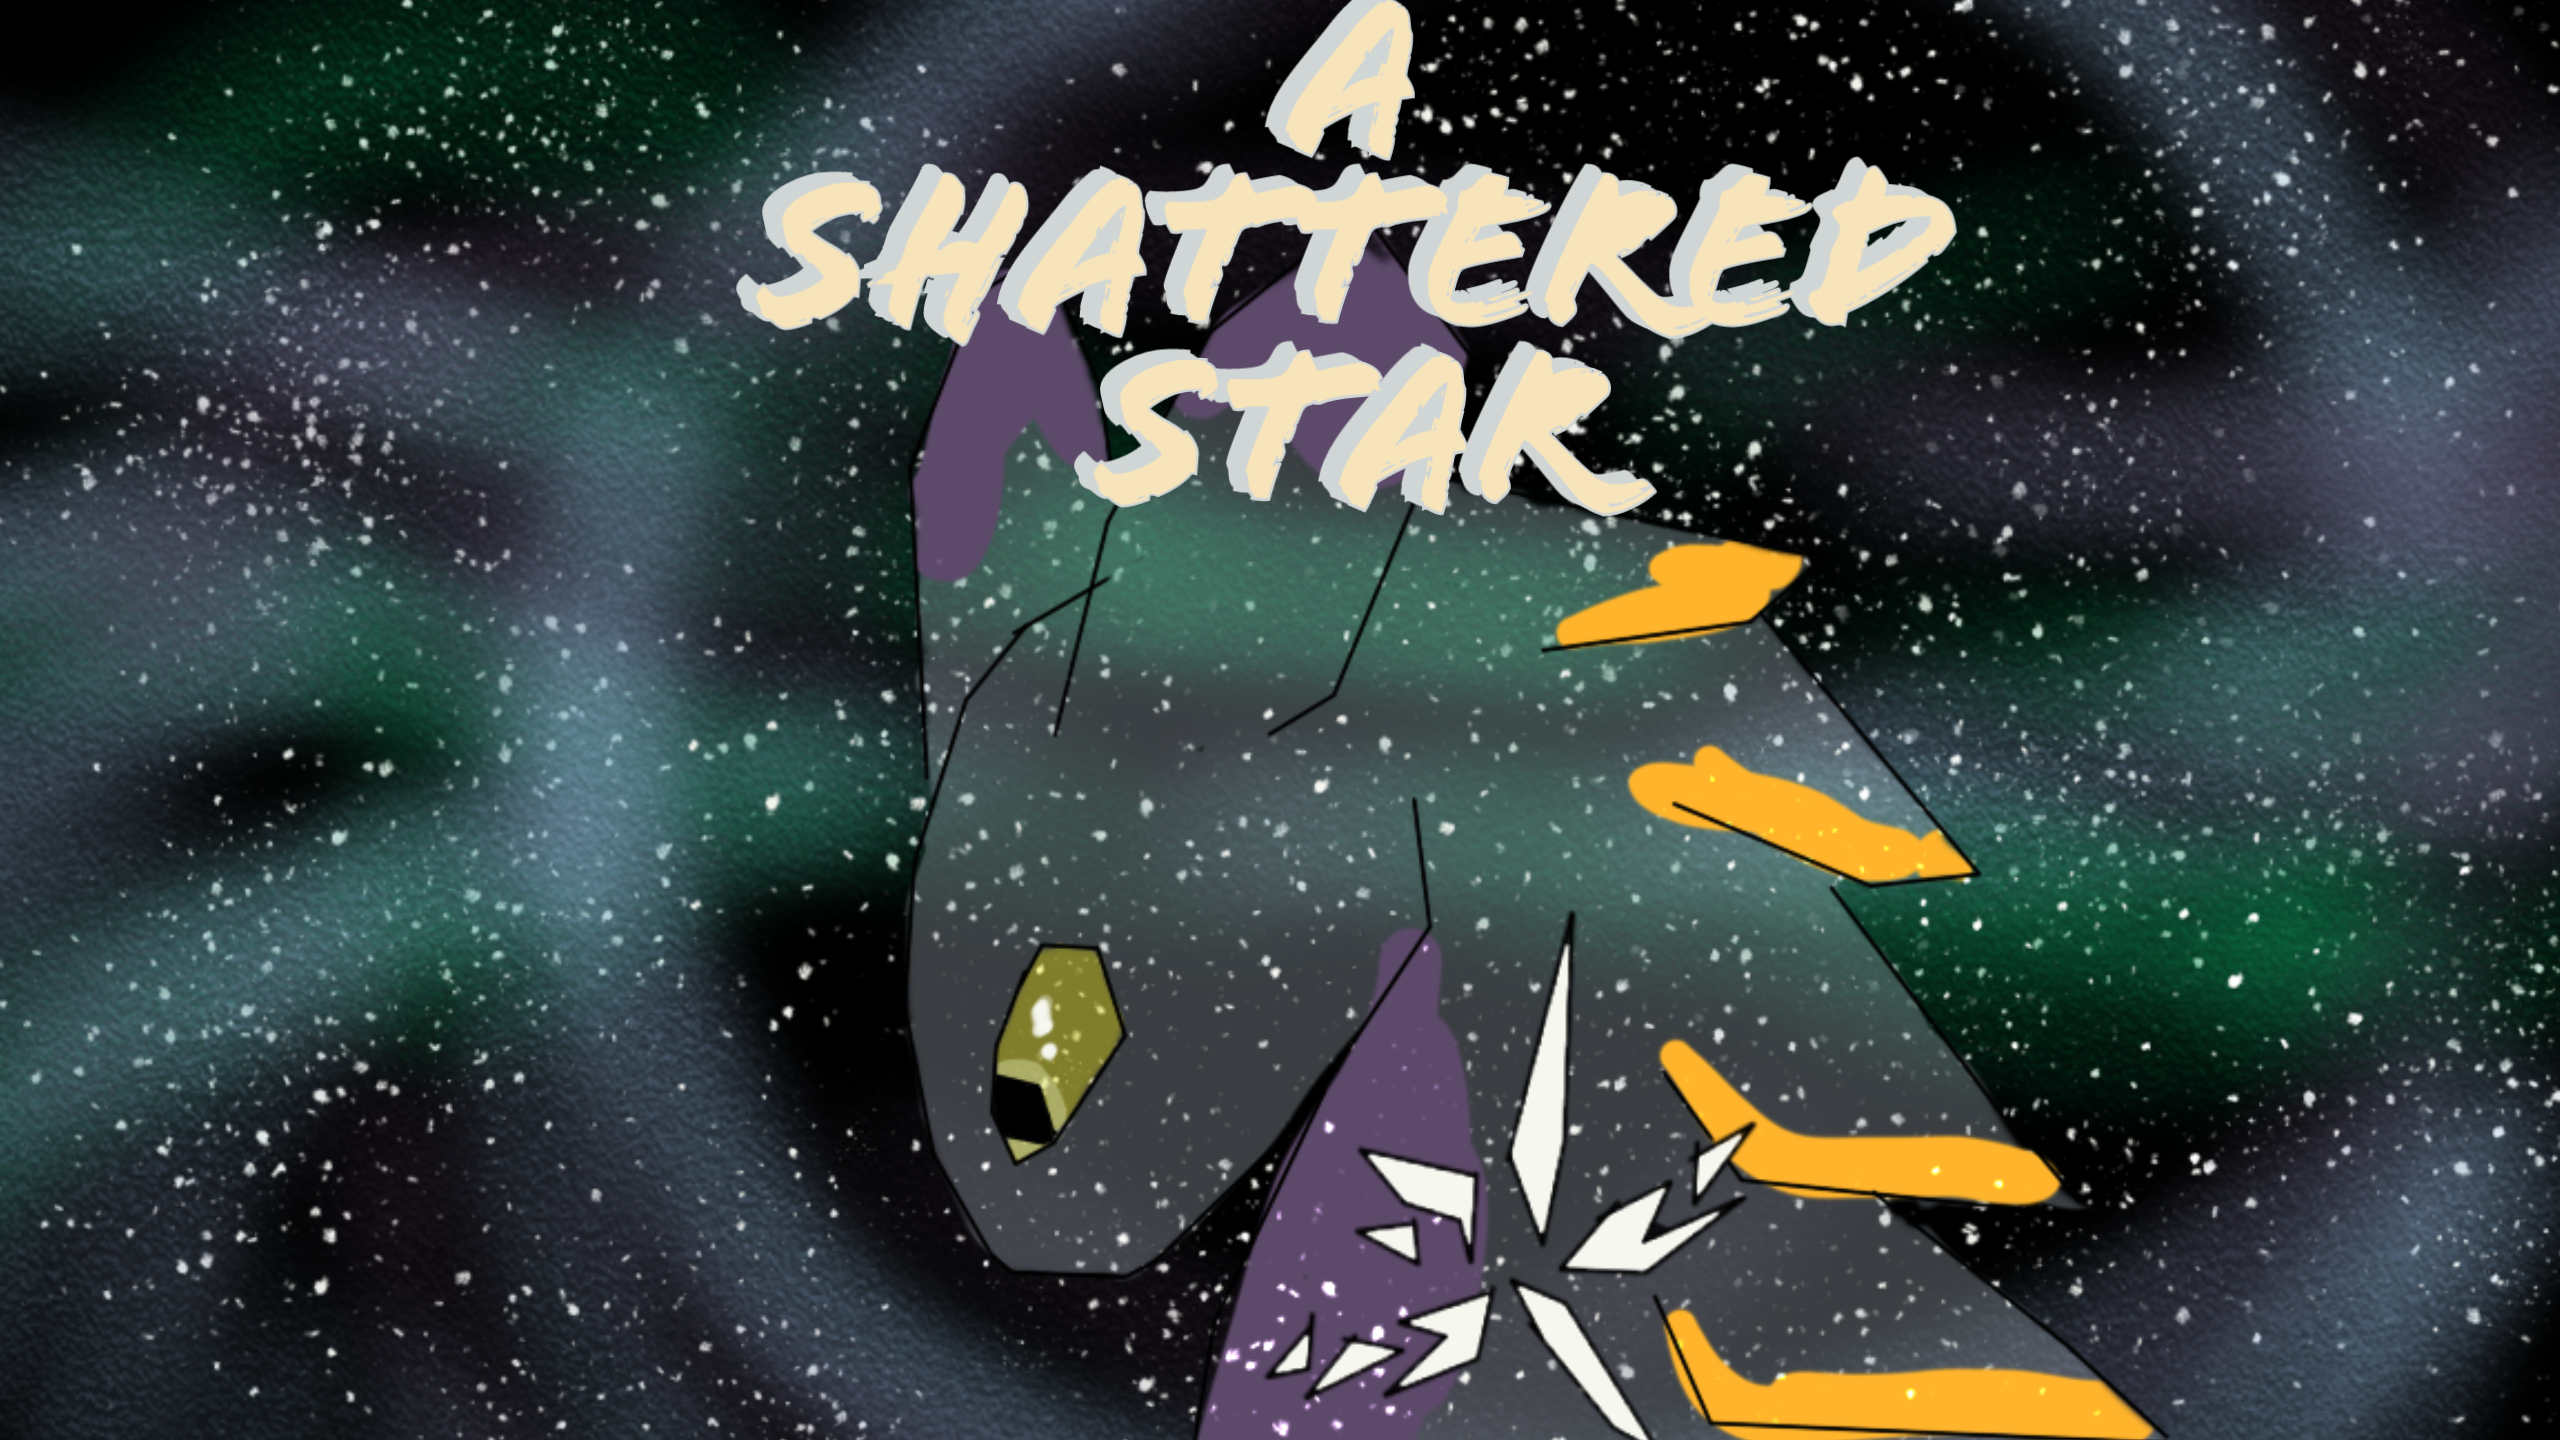 A Shattered Star